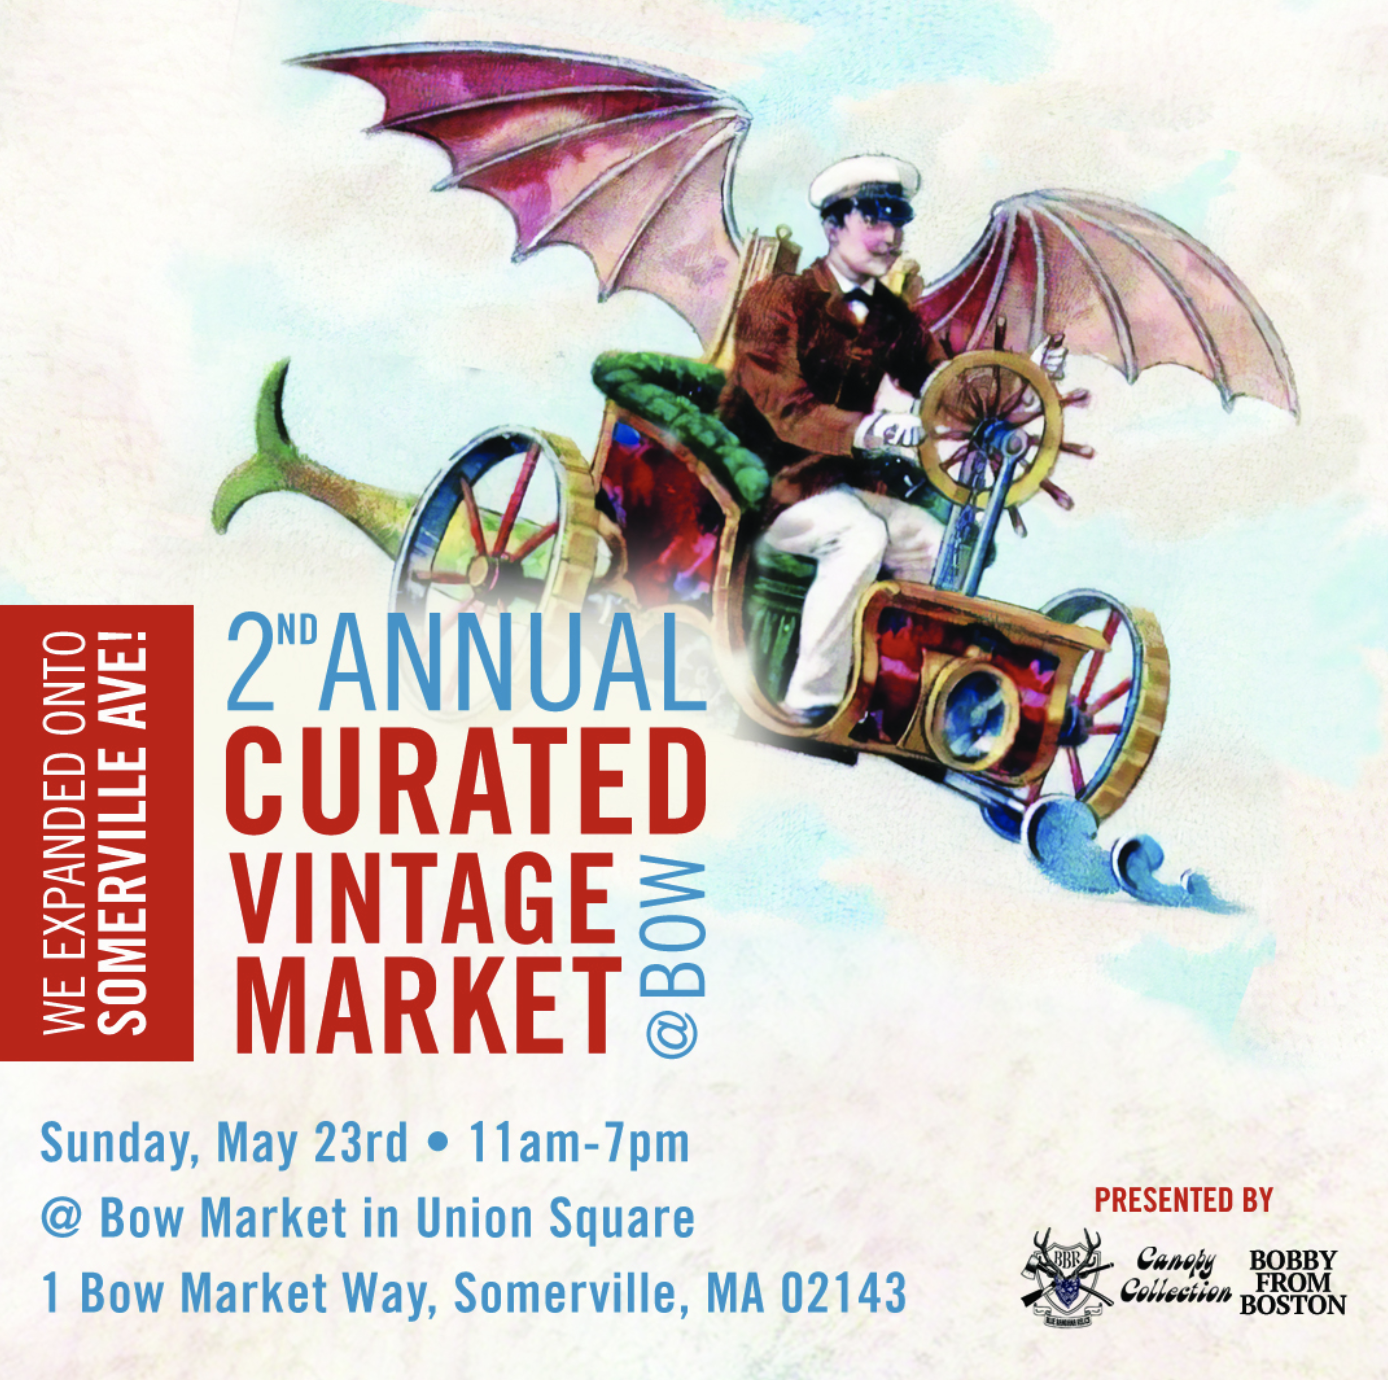 Curated Vintage Market at Bow Market, Somerville